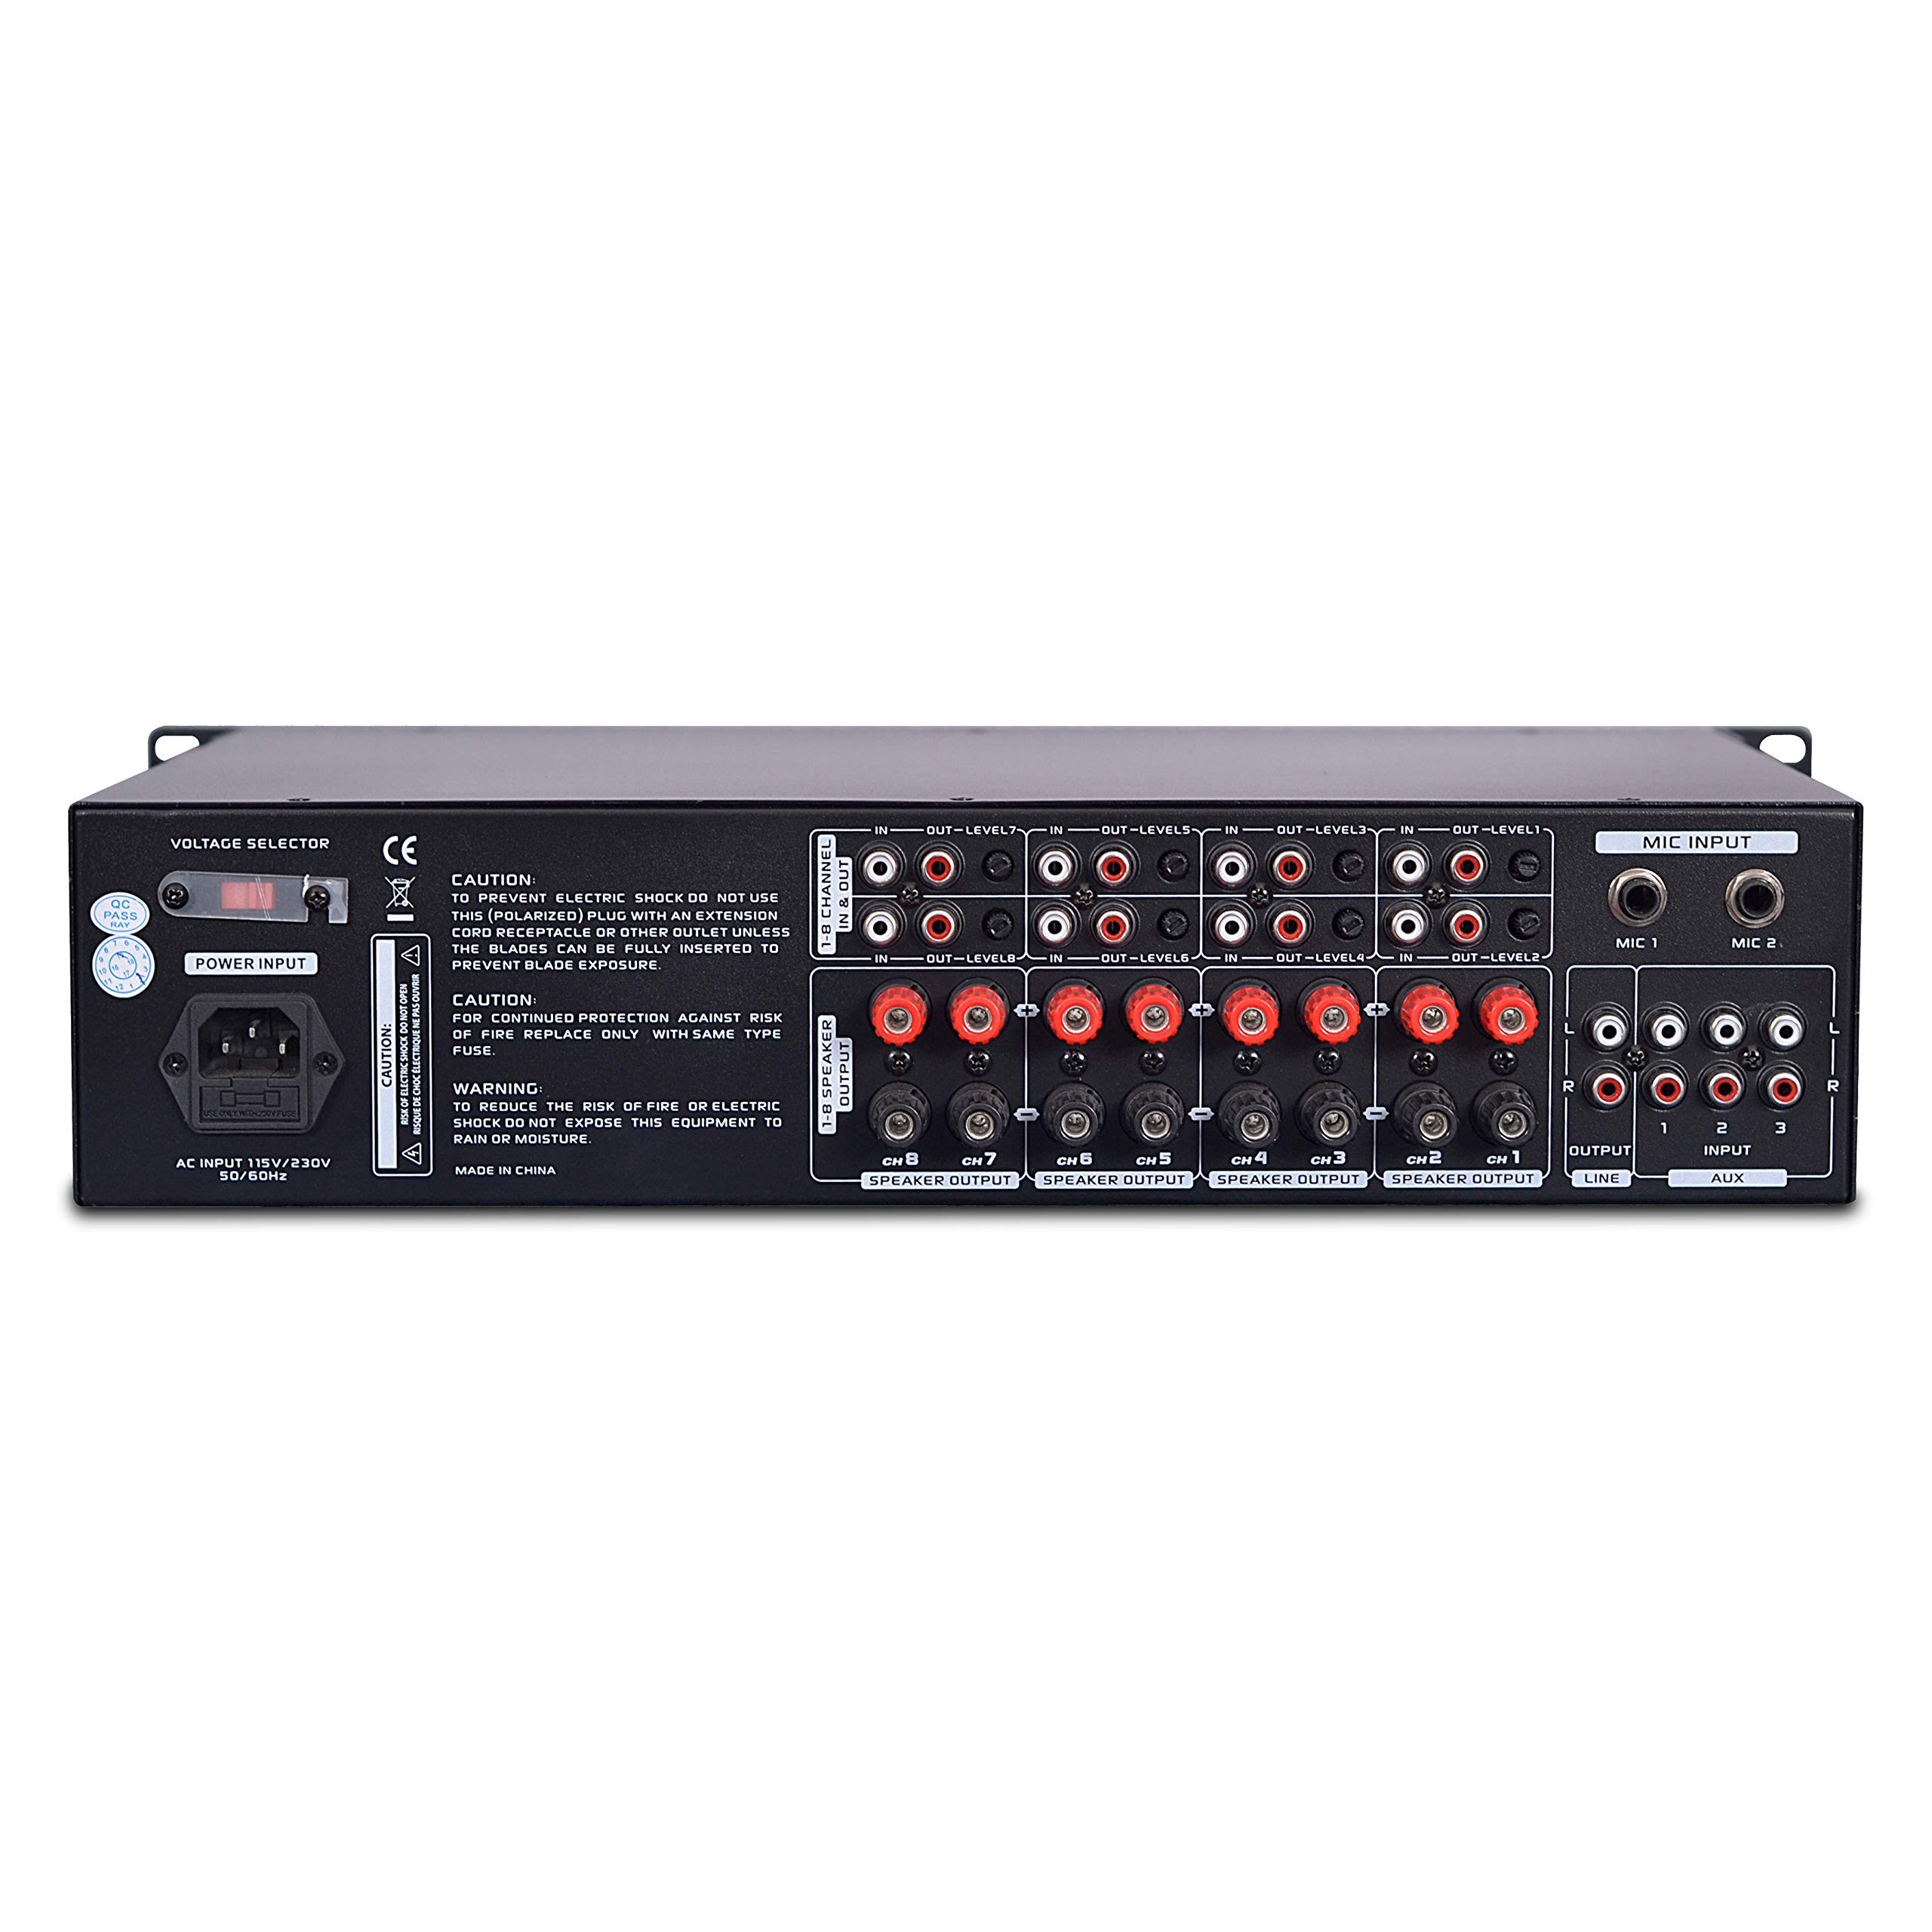 8 Outlet Power Sequencer Conditioner - 2200W Rack Mount Pro Audio Digital Power Supply Controller Regulator w/ Voltage Readout, Surge Protector, For Home Theater, Stage / Studio Use - Pyle PS1200 by Pyle (Image #2)